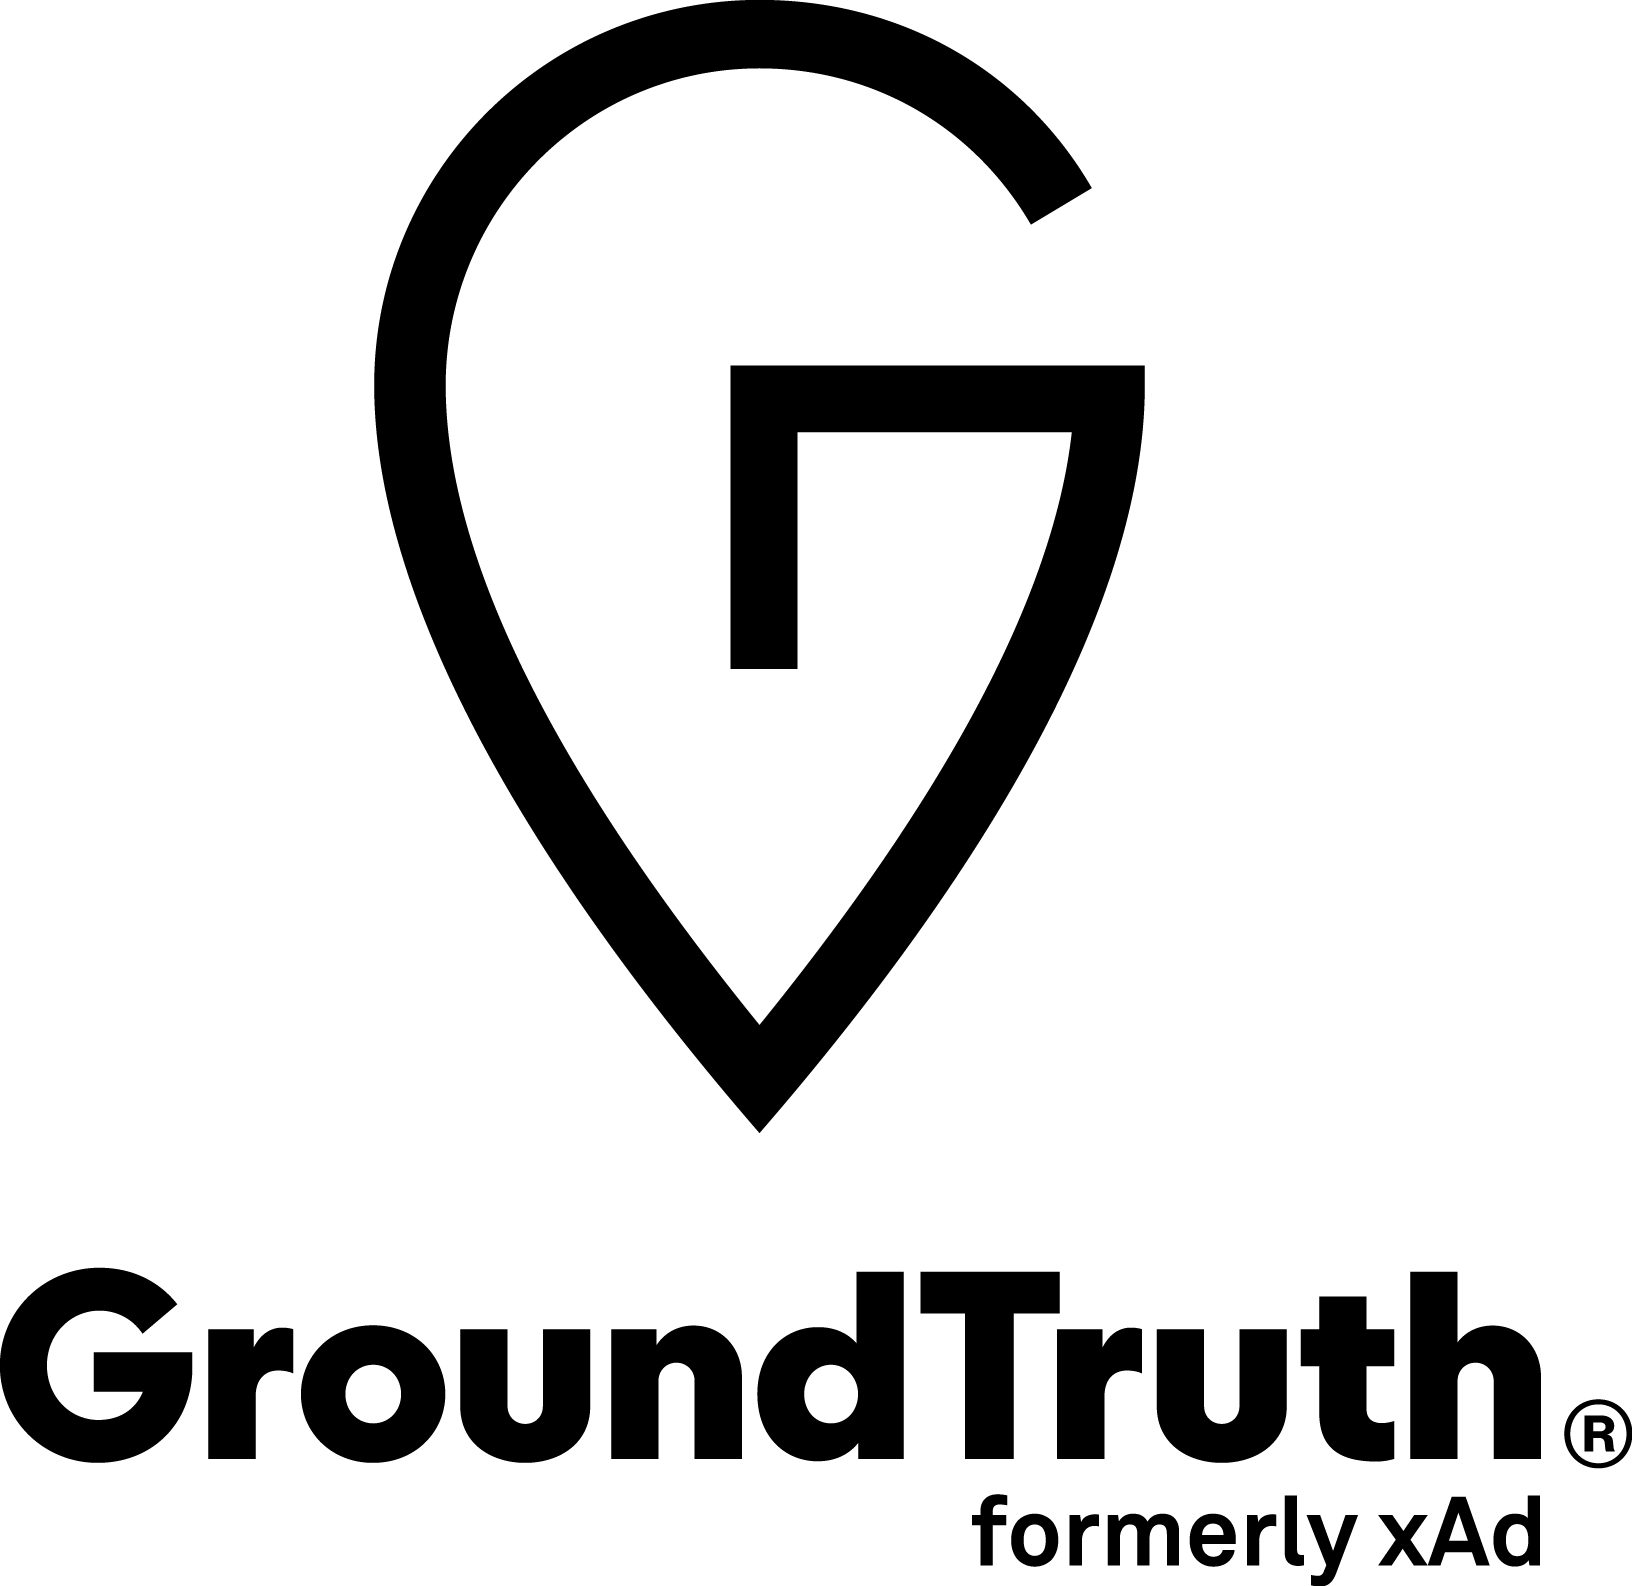 GroundTruth (formerly xAd)